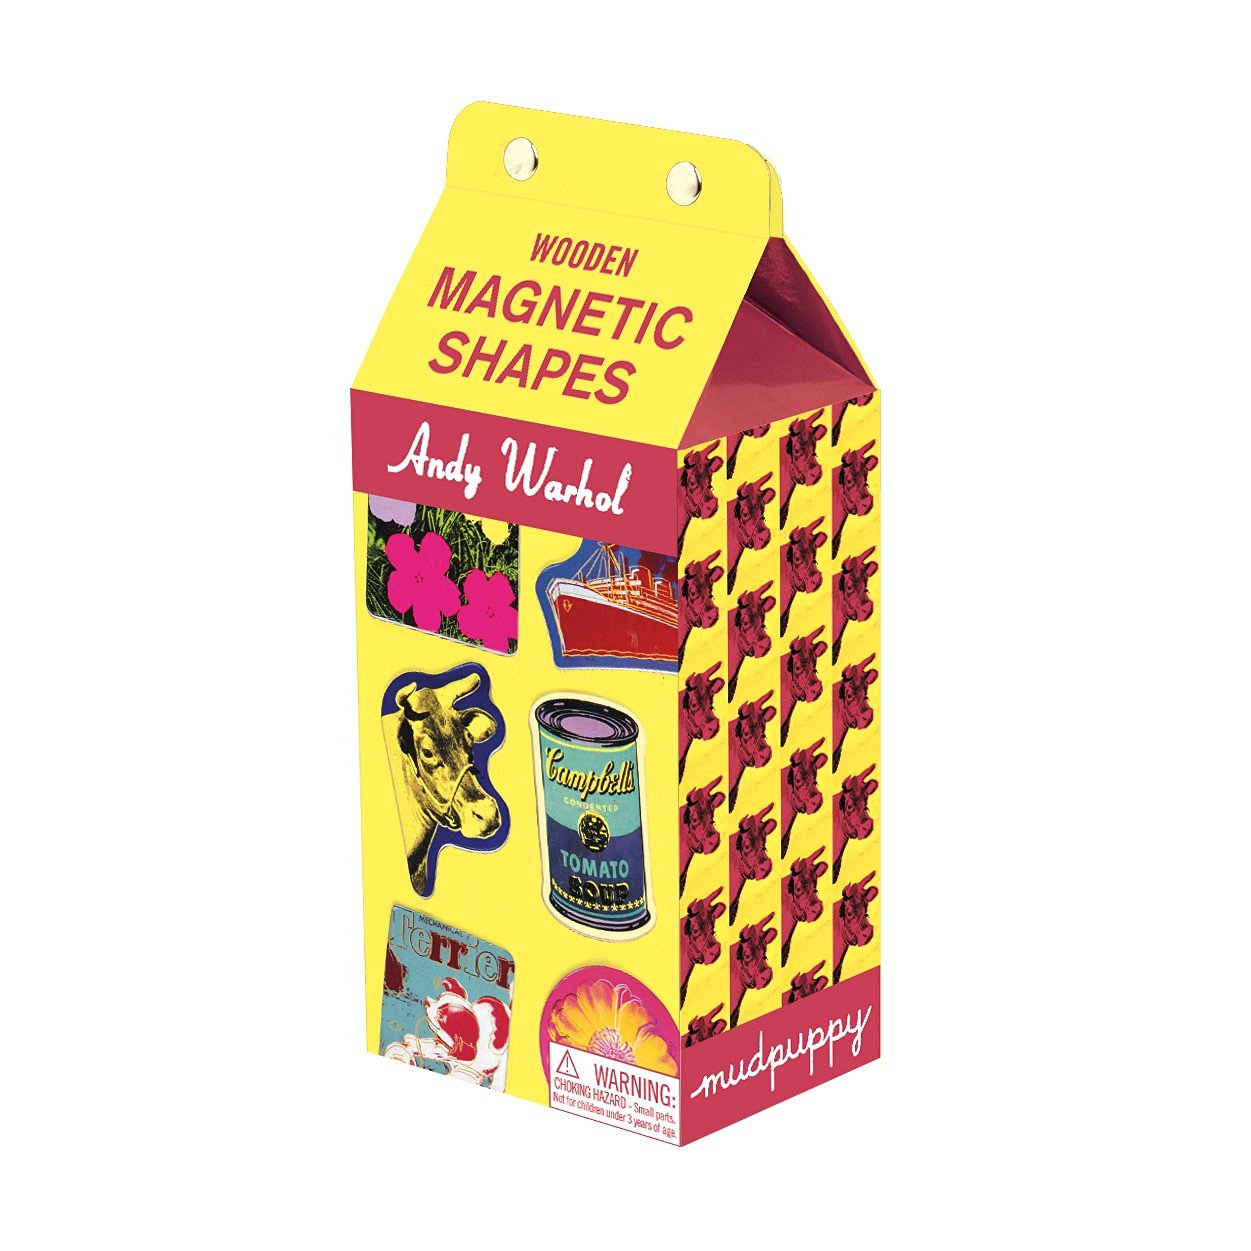 Mudpuppy Andy Warhol Wooden Magnetic Shapes